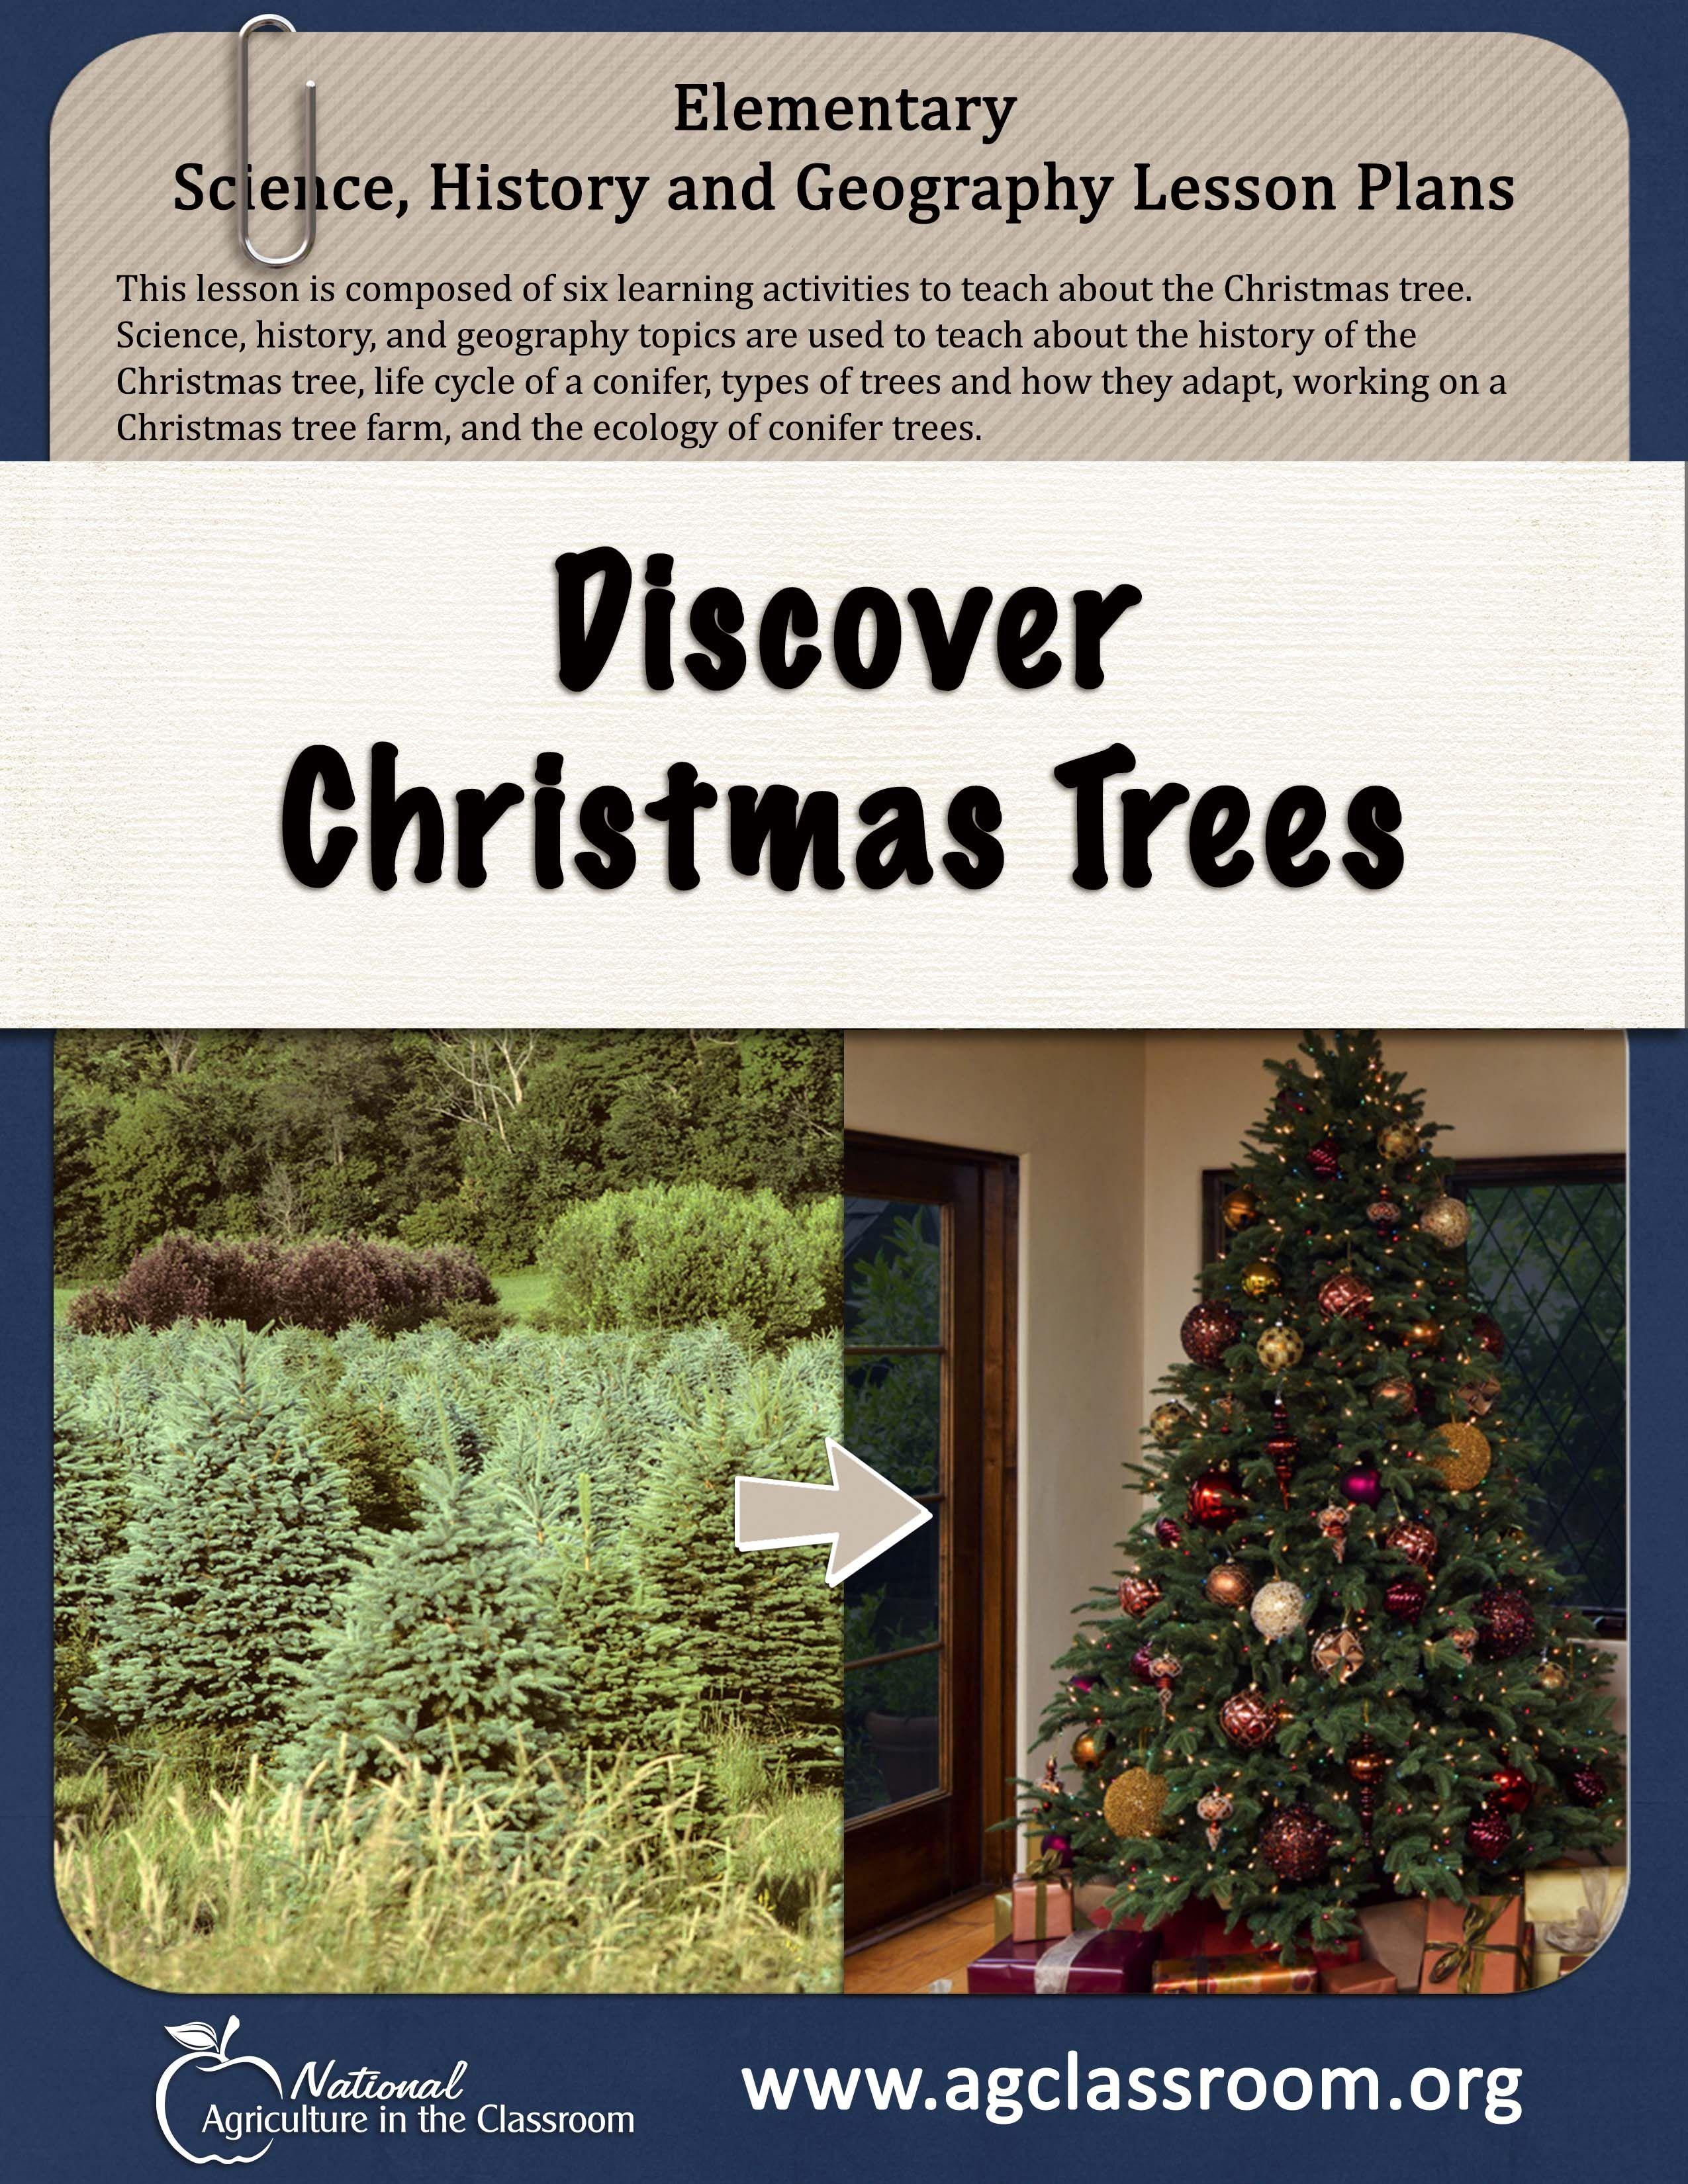 Elementary Lesson Plan All About Christmas Trees Integrates Science Geography And History Standards Elementary Lesson Plans Plant Lessons Geography Lessons